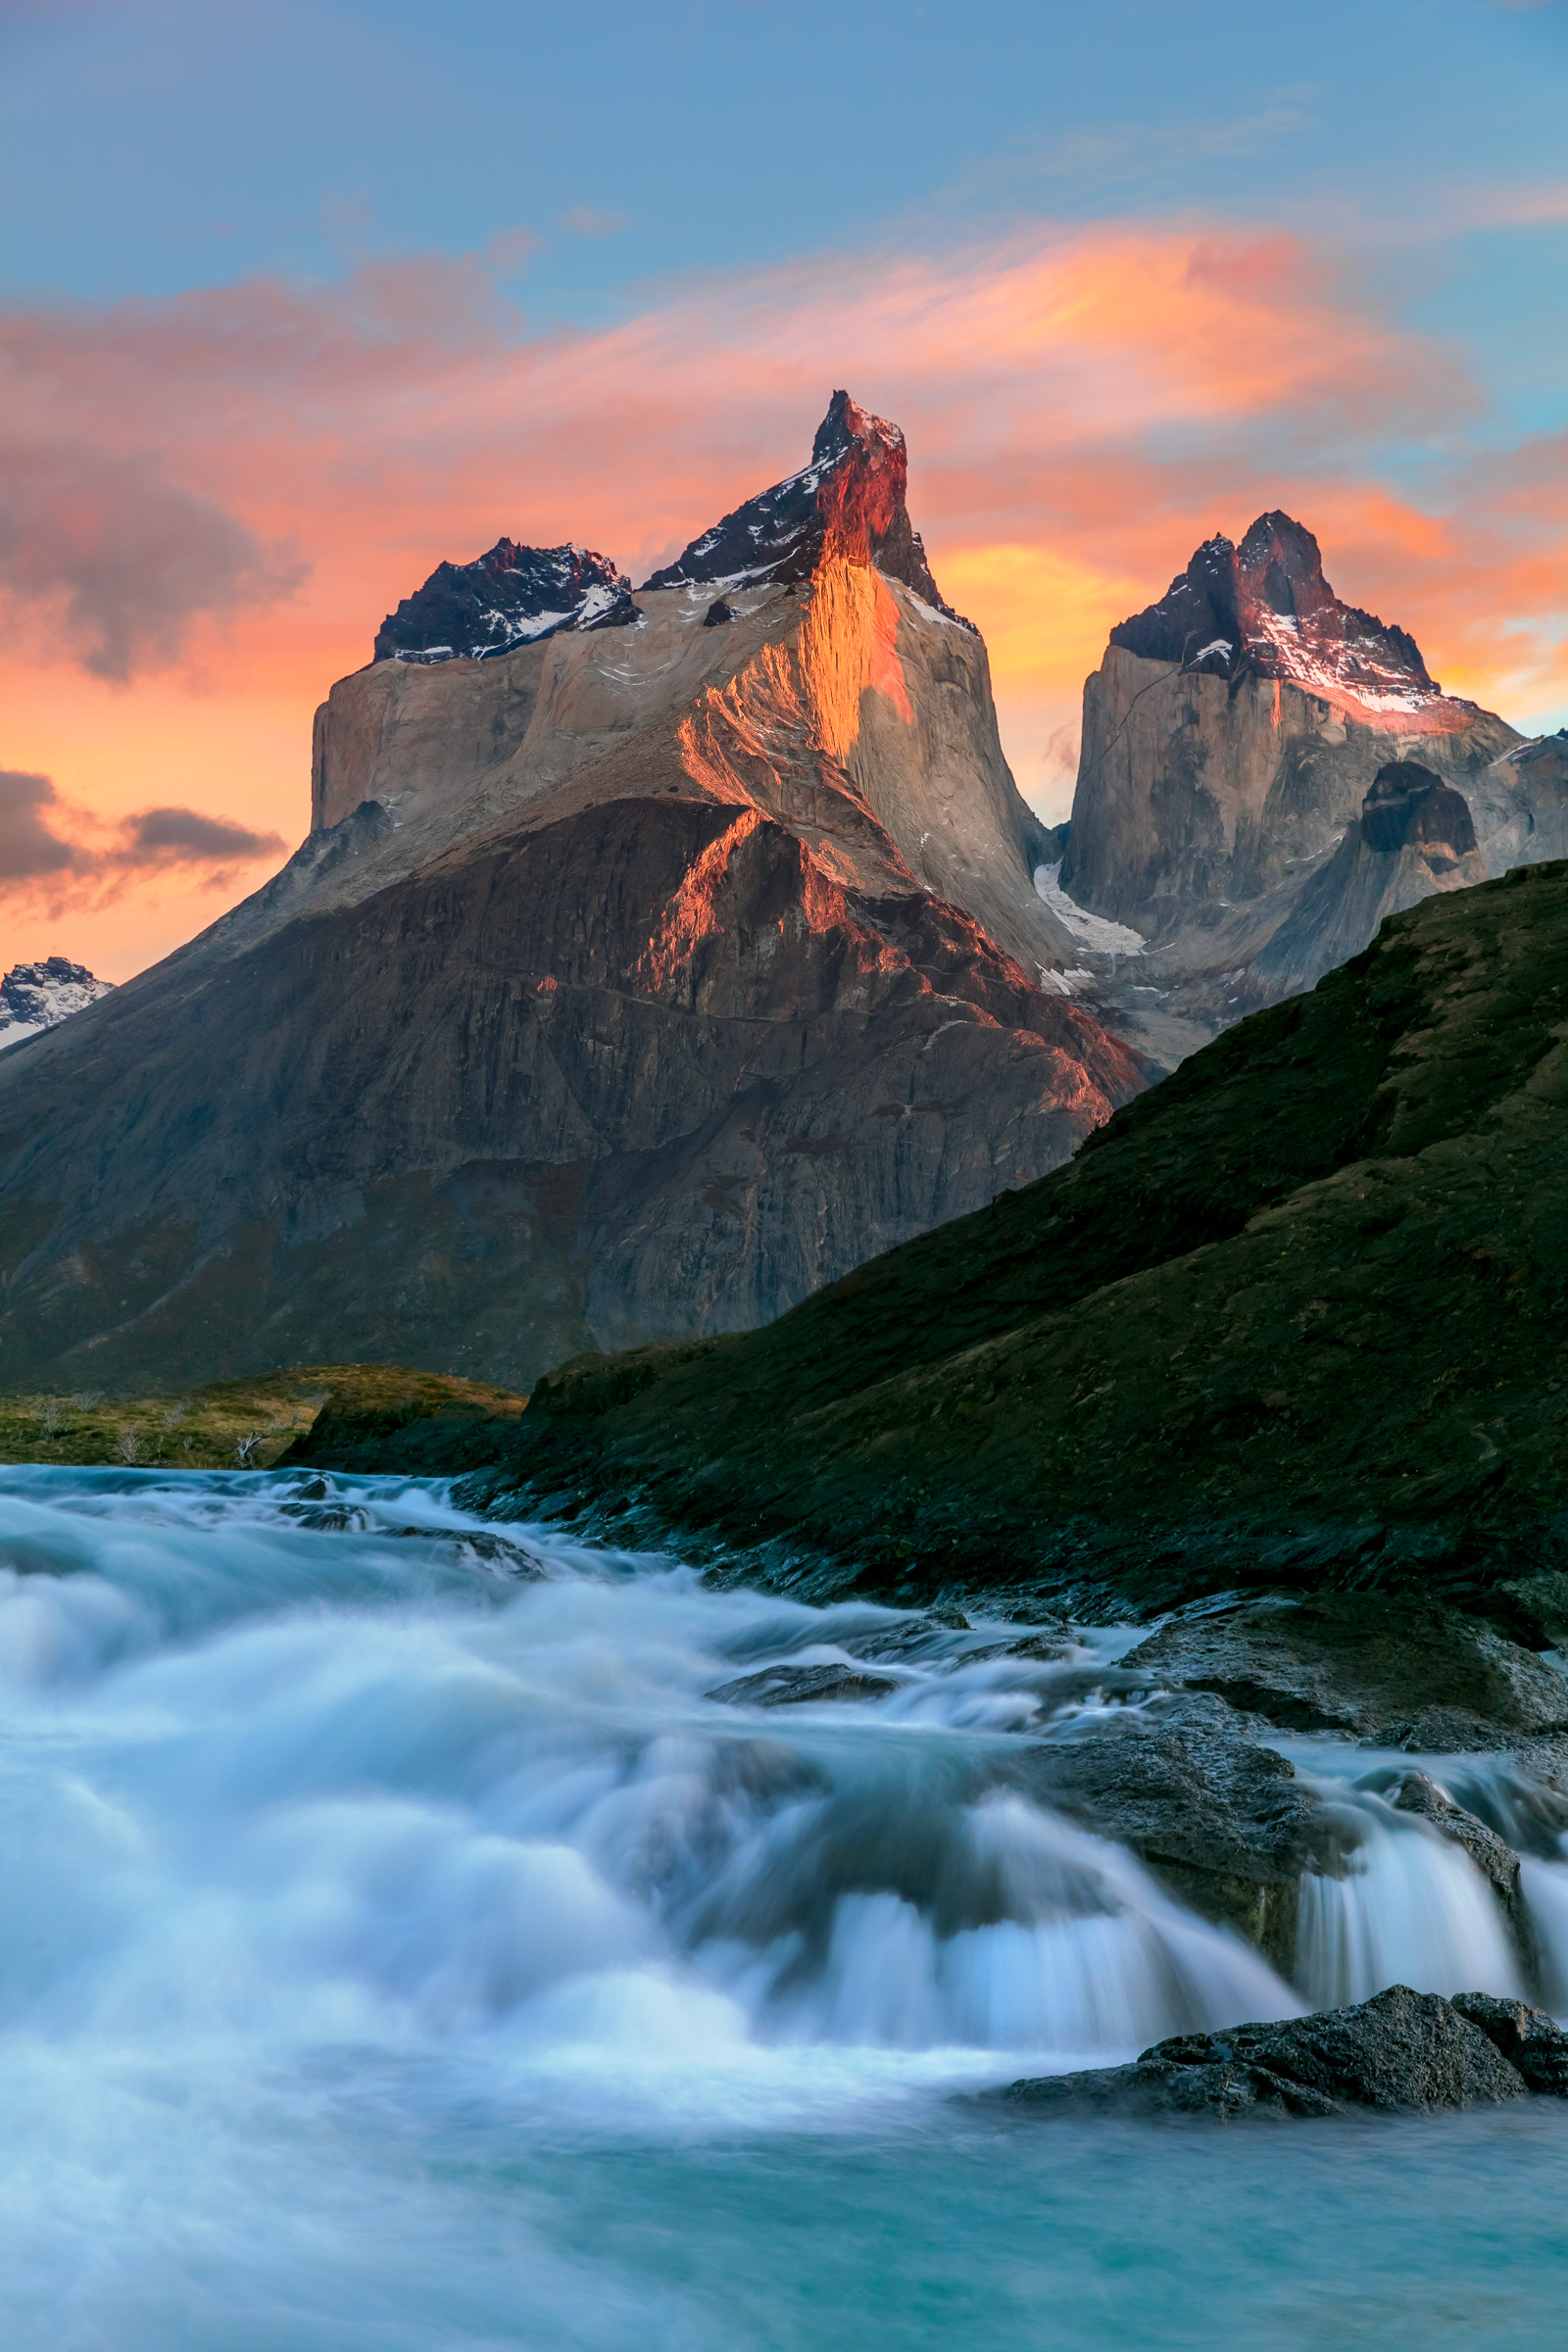 A Limited Edition, Fine Art photograph of the sunrise sky over Los Cuernos and the river cascades in Torres del Paine, Patagonia...